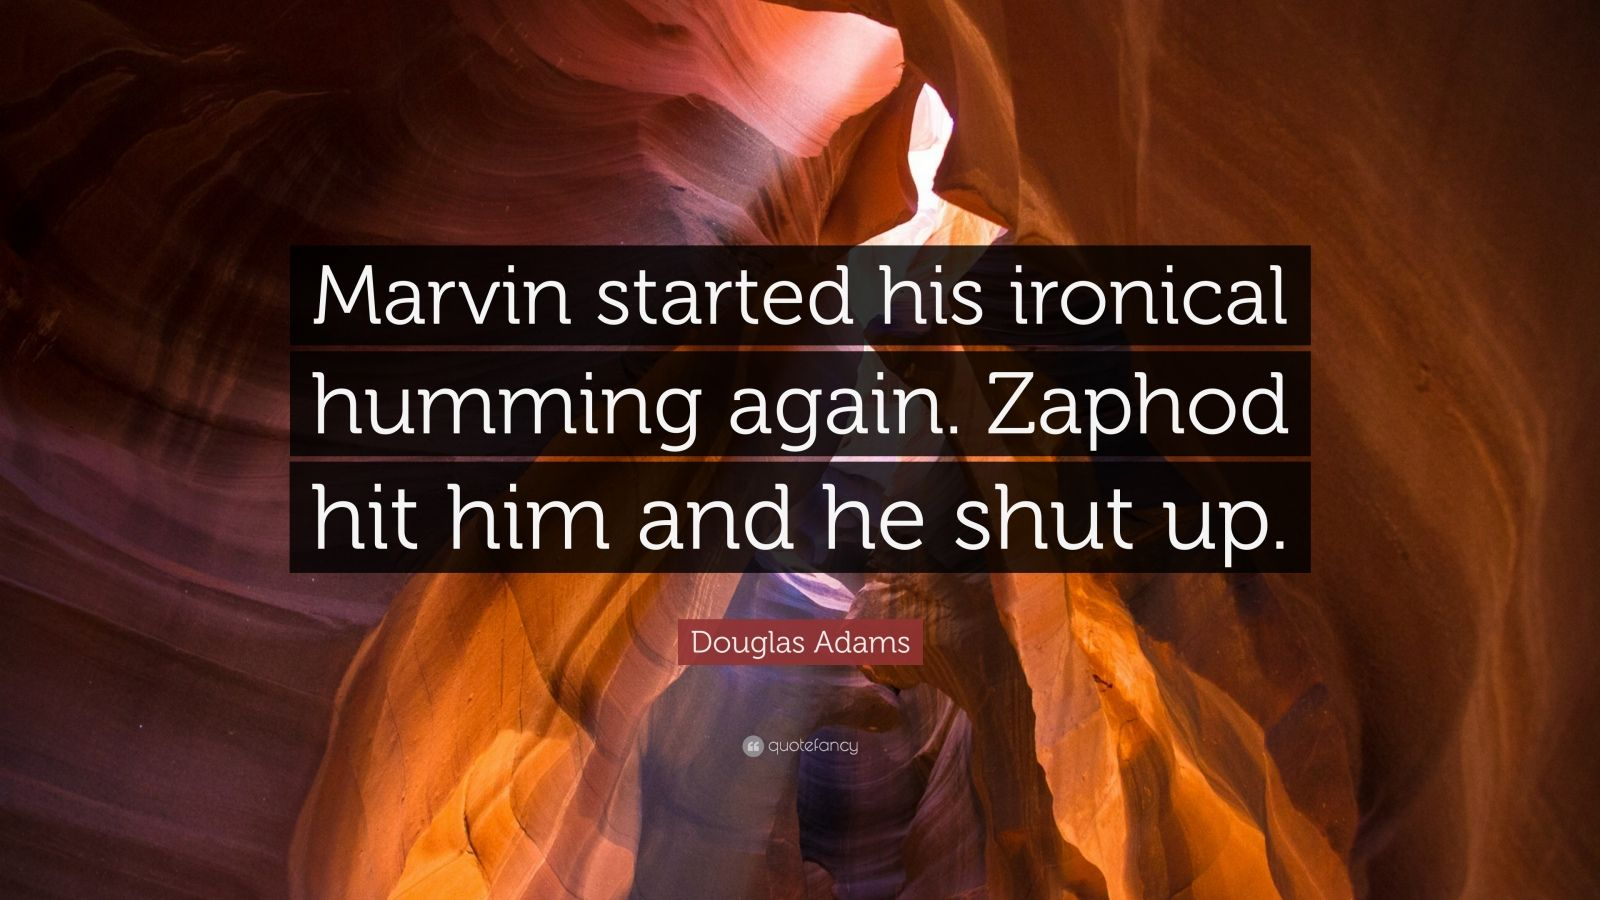 """Douglas Adams Quote: """"Marvin started his ironical humming again. Zaphod hit him and he shut up."""""""